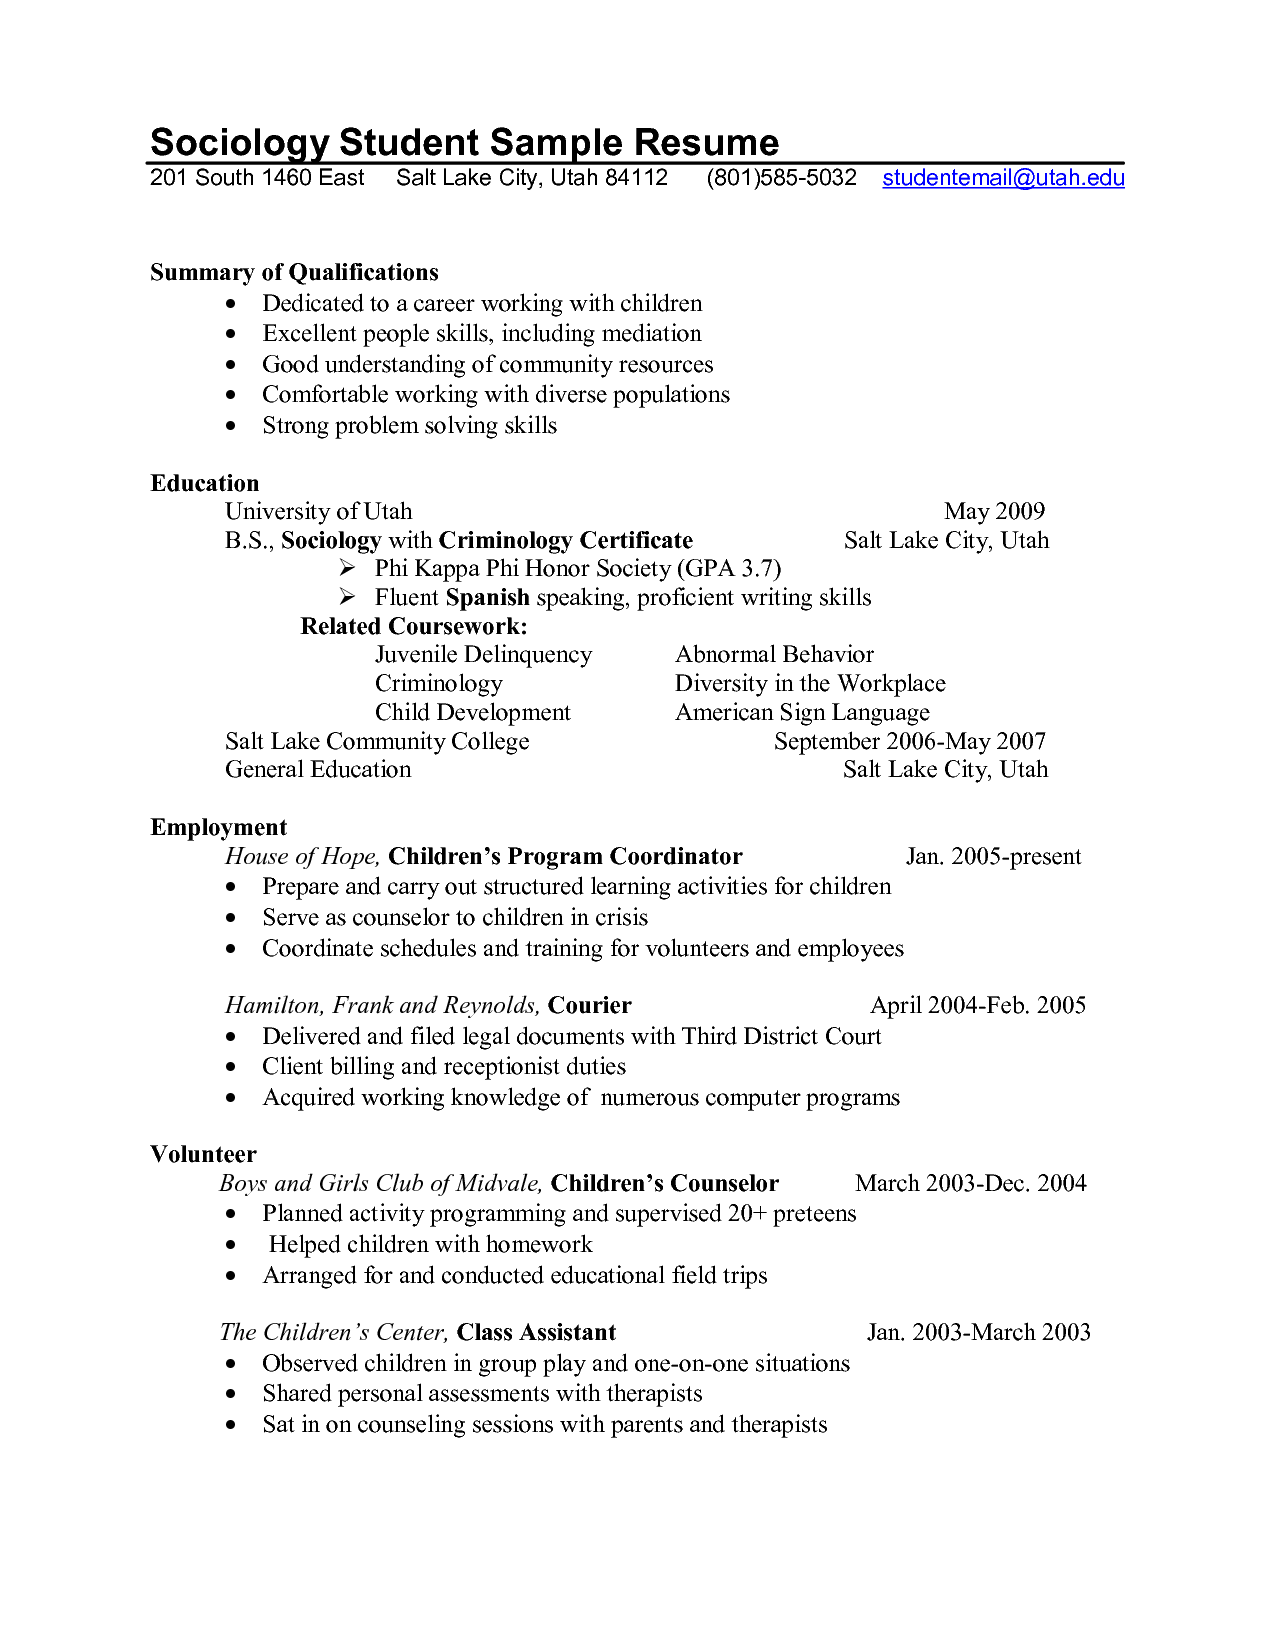 Casac T Resume Sample Professional School Counselor Resume Sociology Student Sample